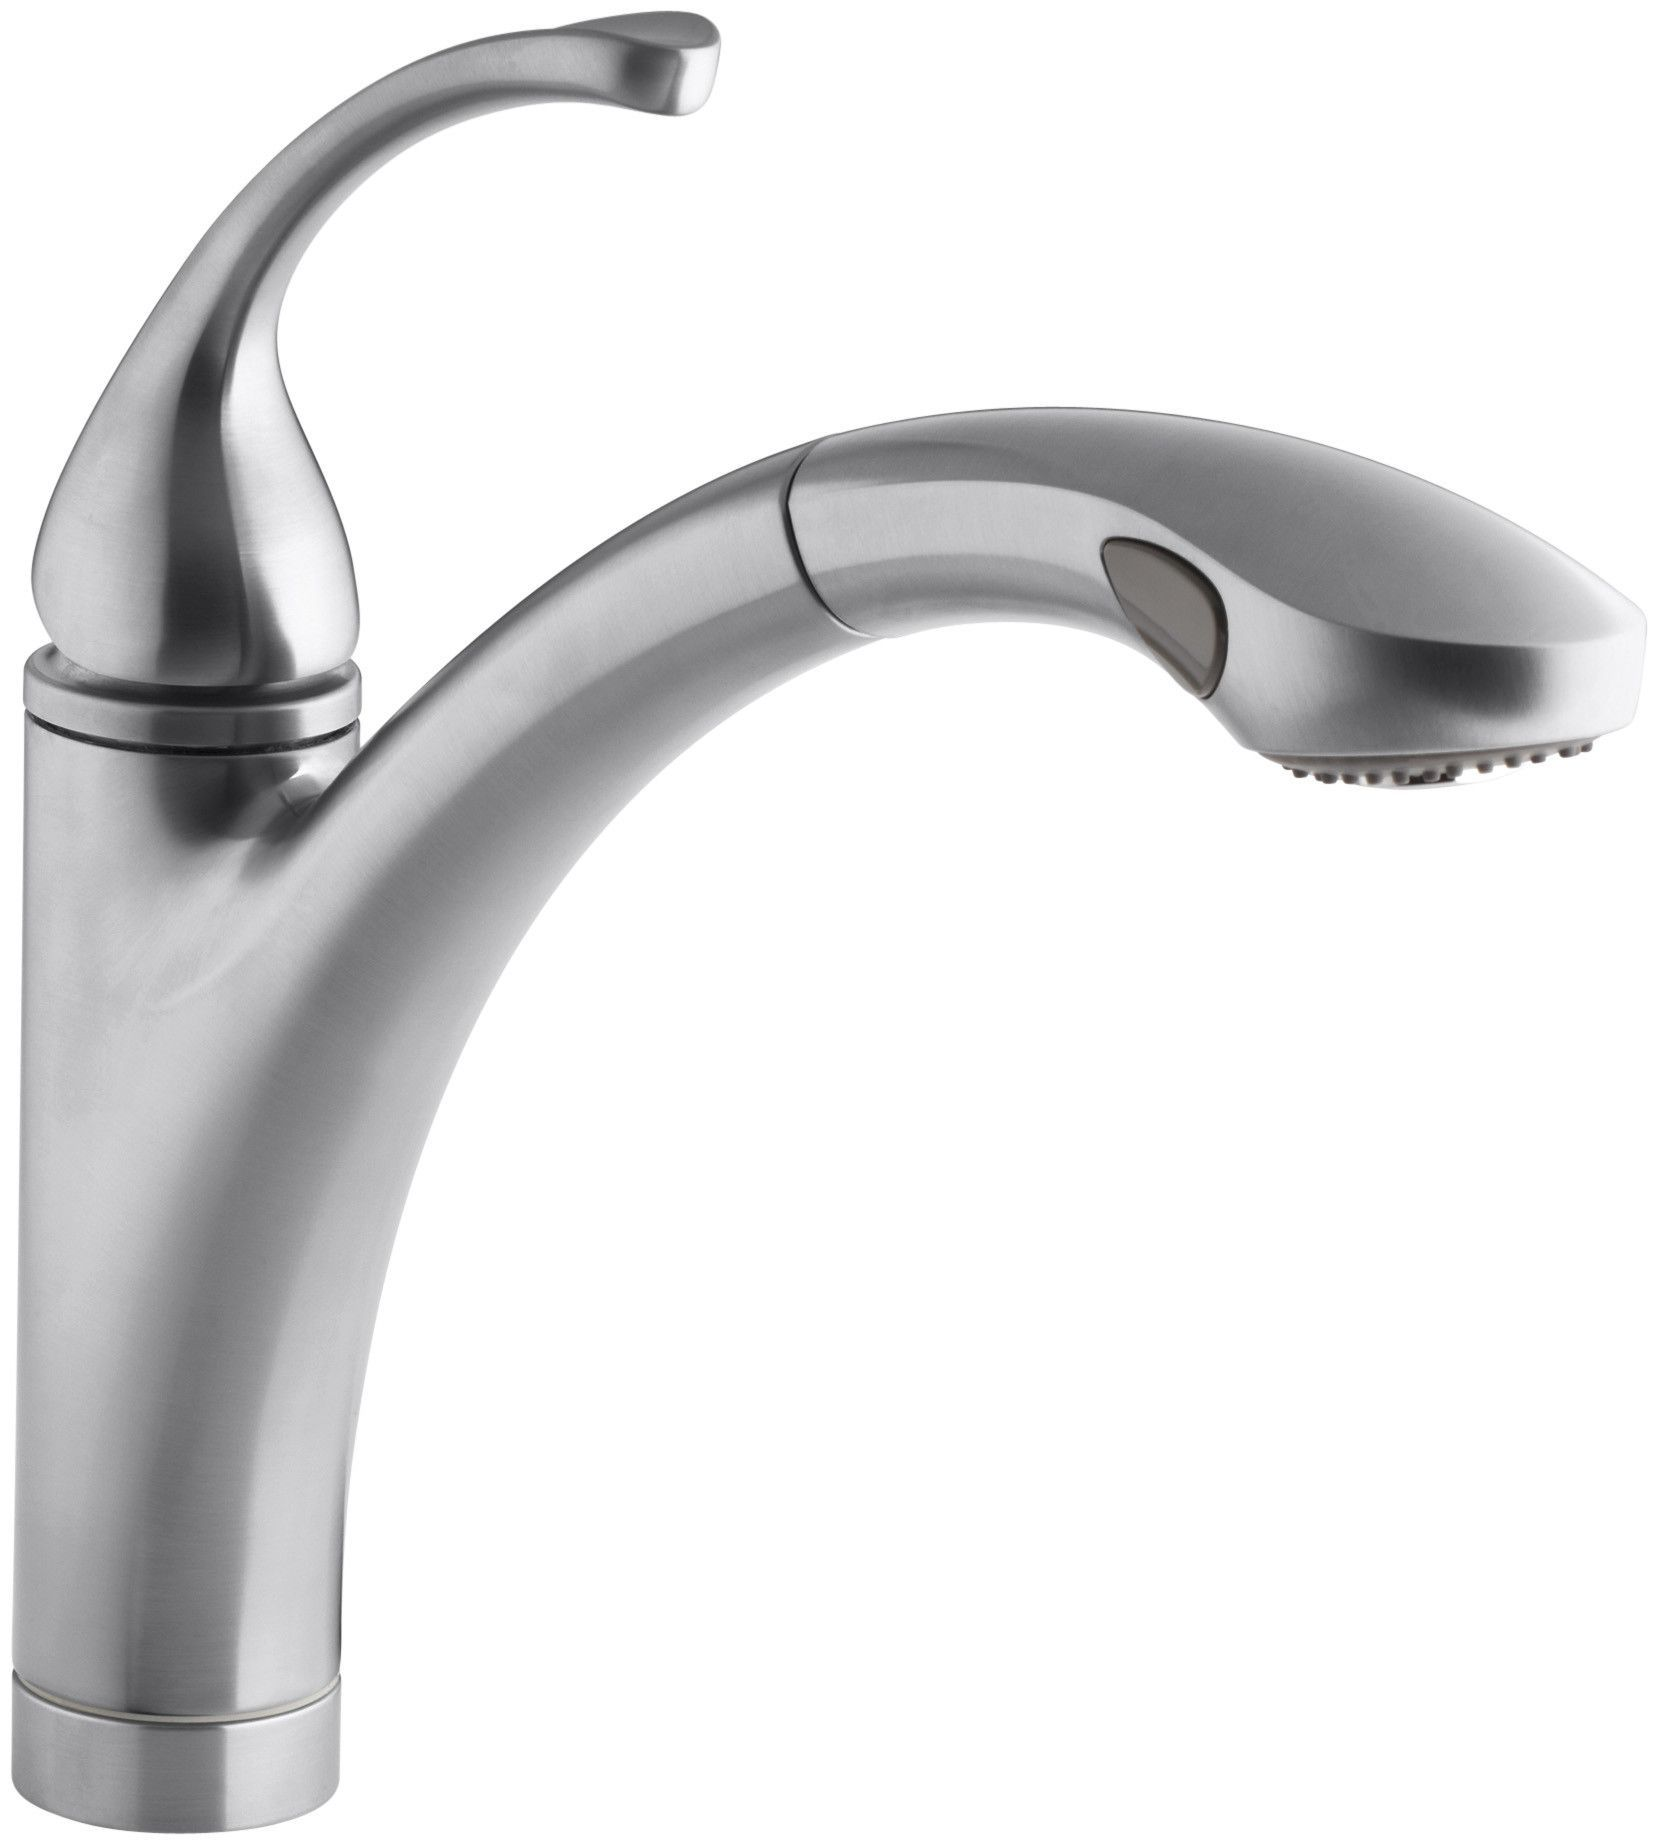 """Forté Single-Hole or 3-Hole Kitchen Sink Faucet with 10-1/8"""" Pullout Spray Spout"""